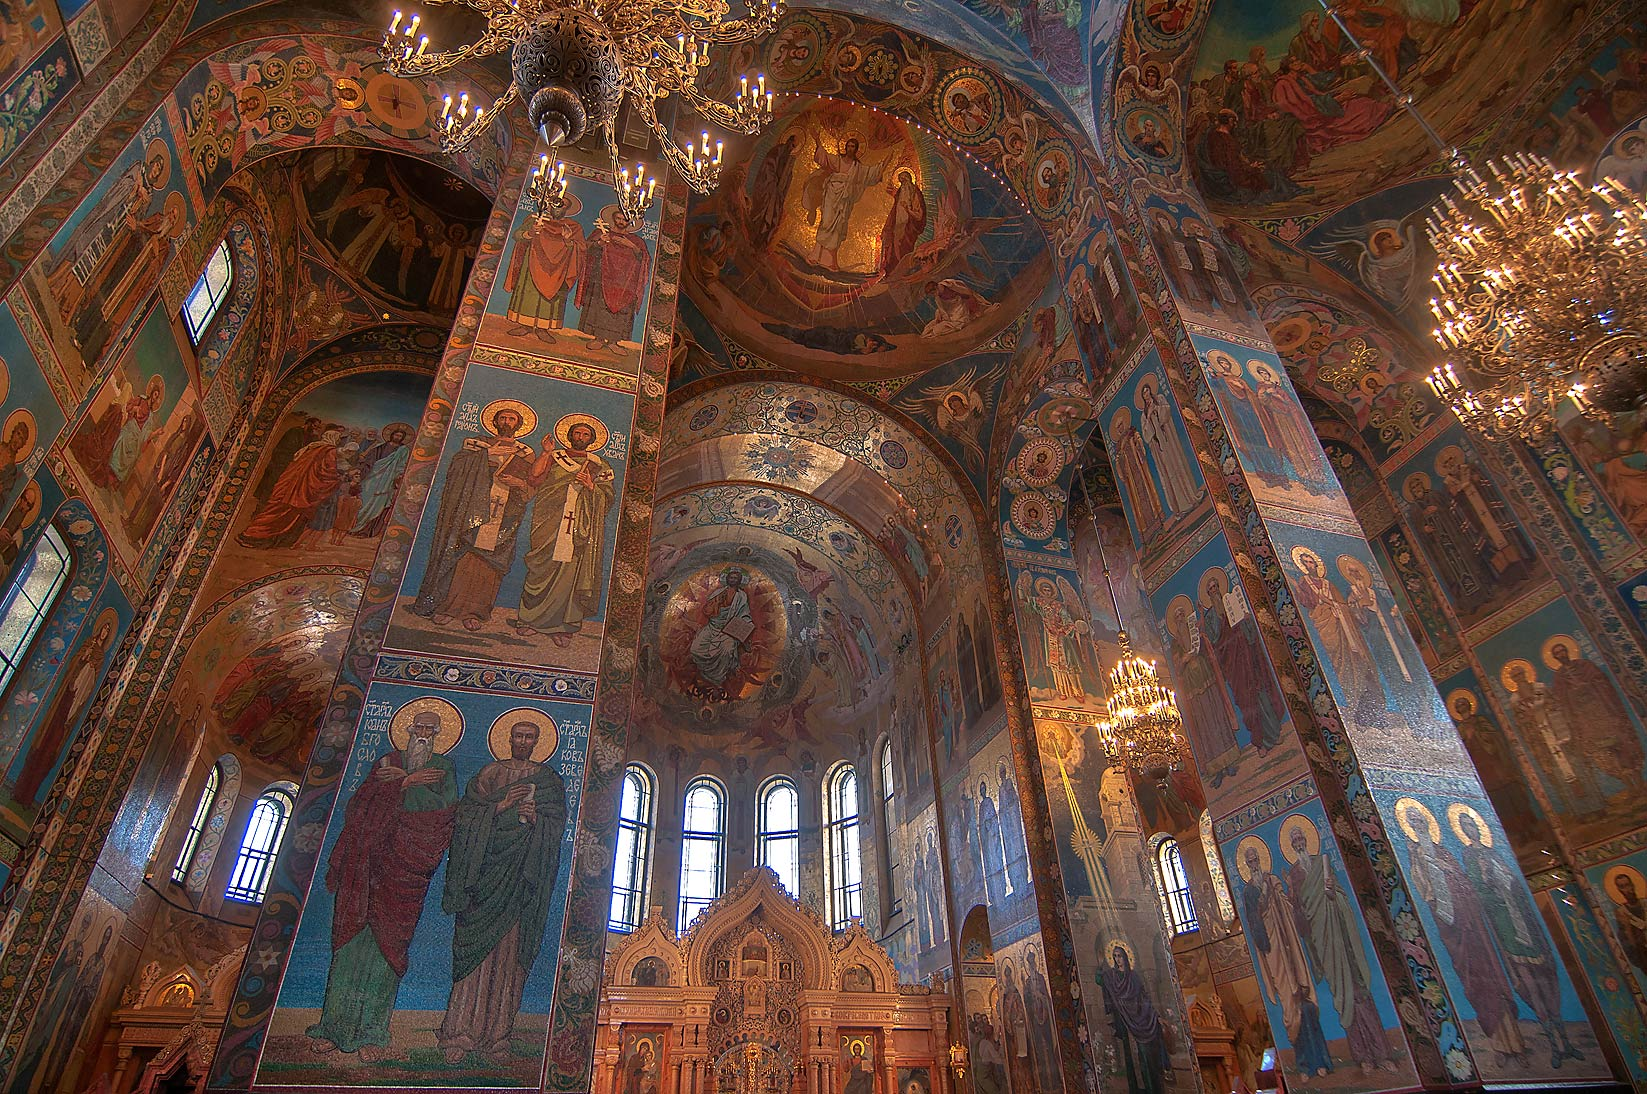 Mosaic walls of Church of Savior on Blood. St.Petersburg, Russia